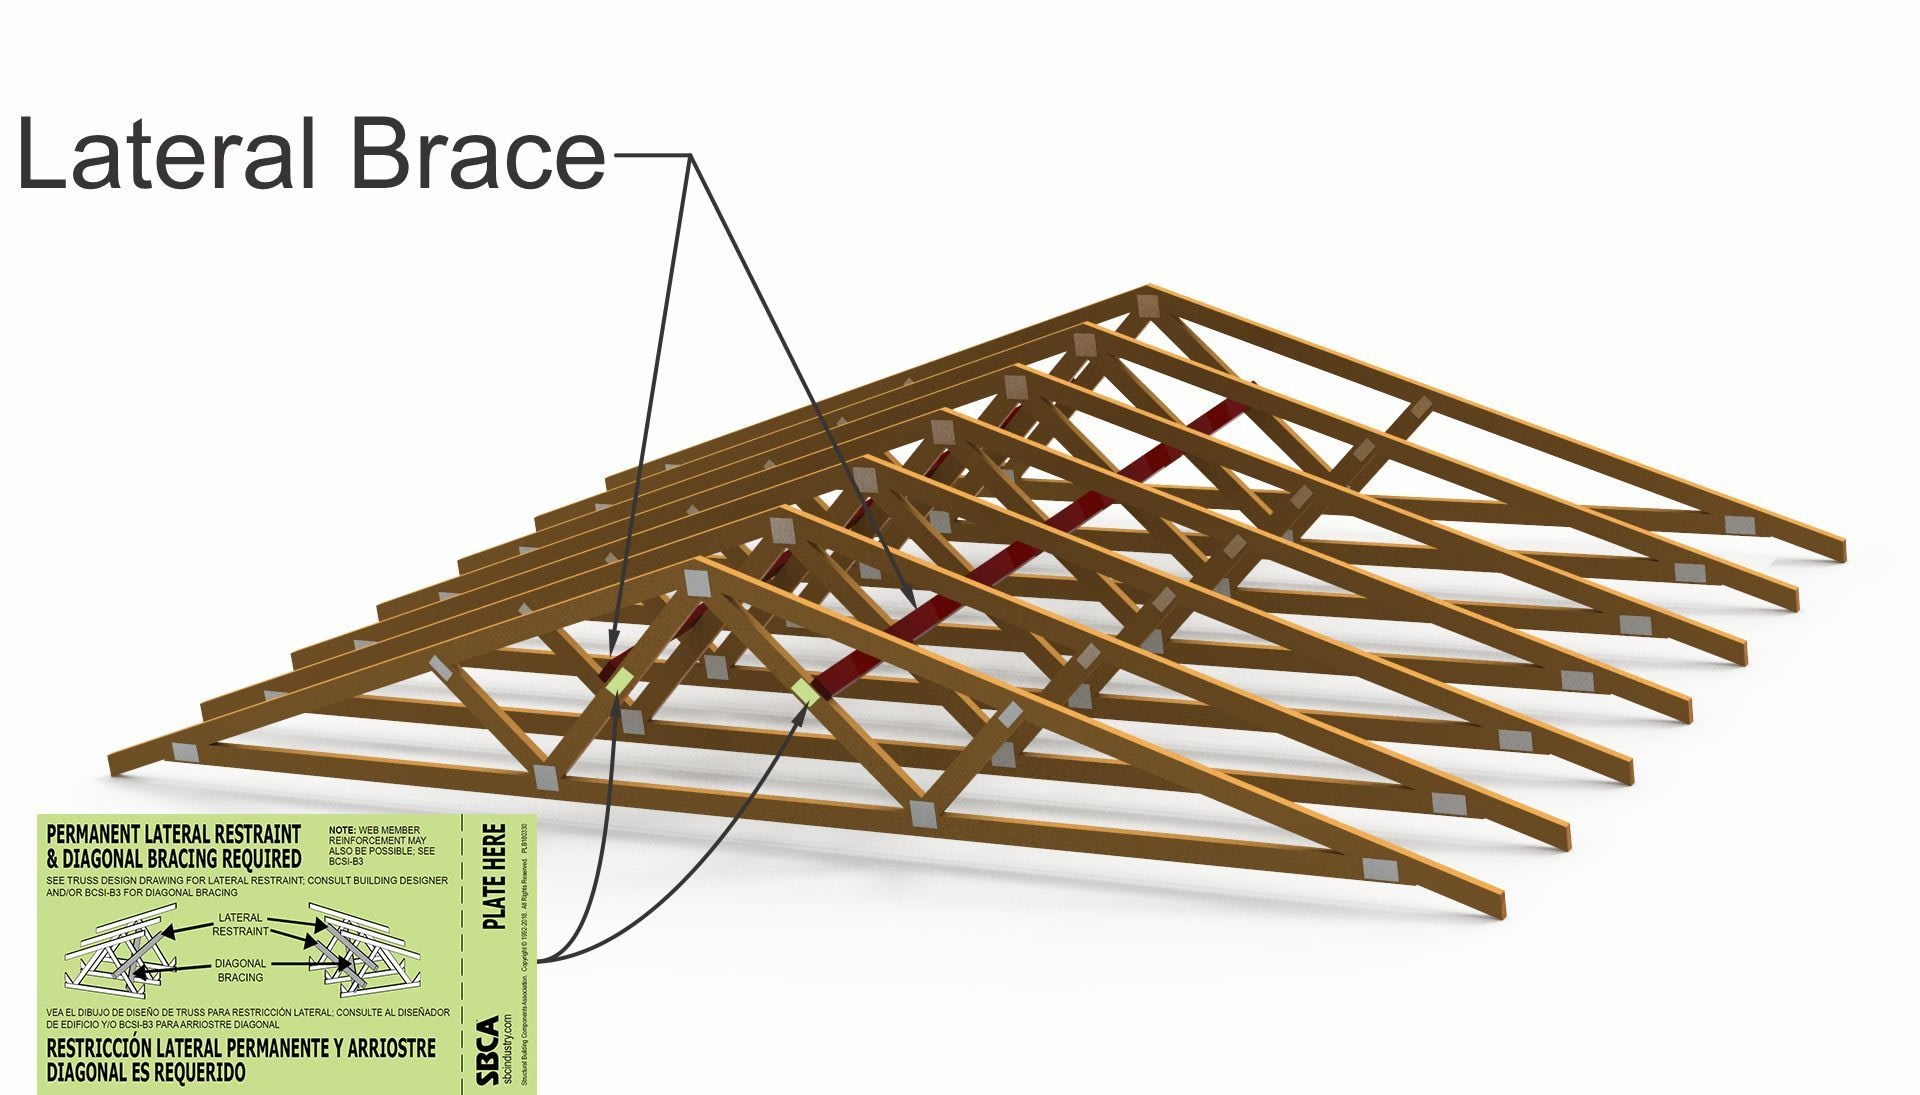 Lateral bracing